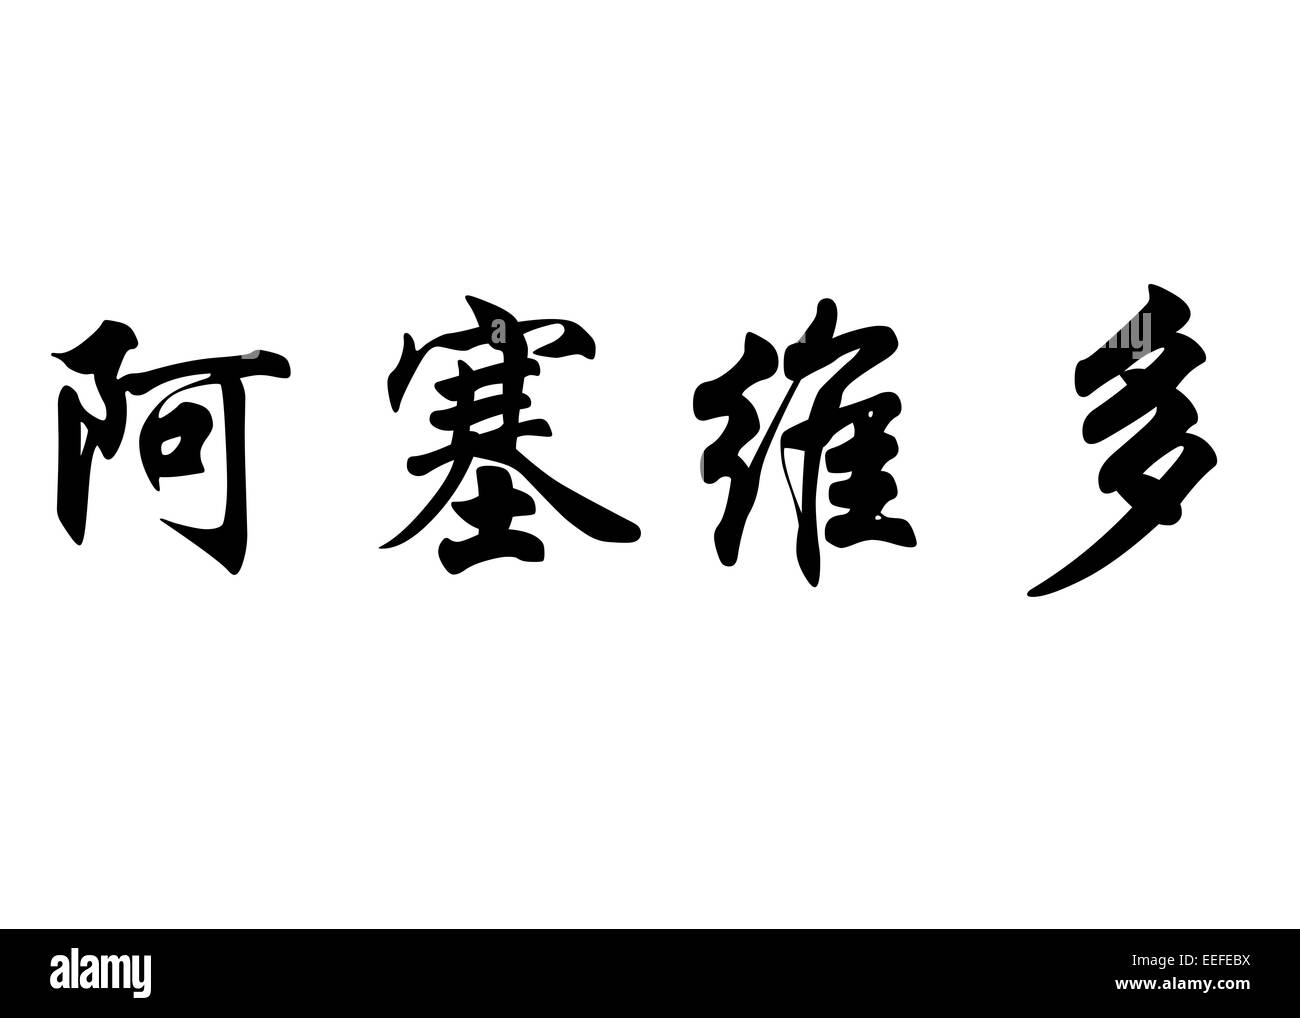 English name Acevedo in chinese kanji calligraphy characters or